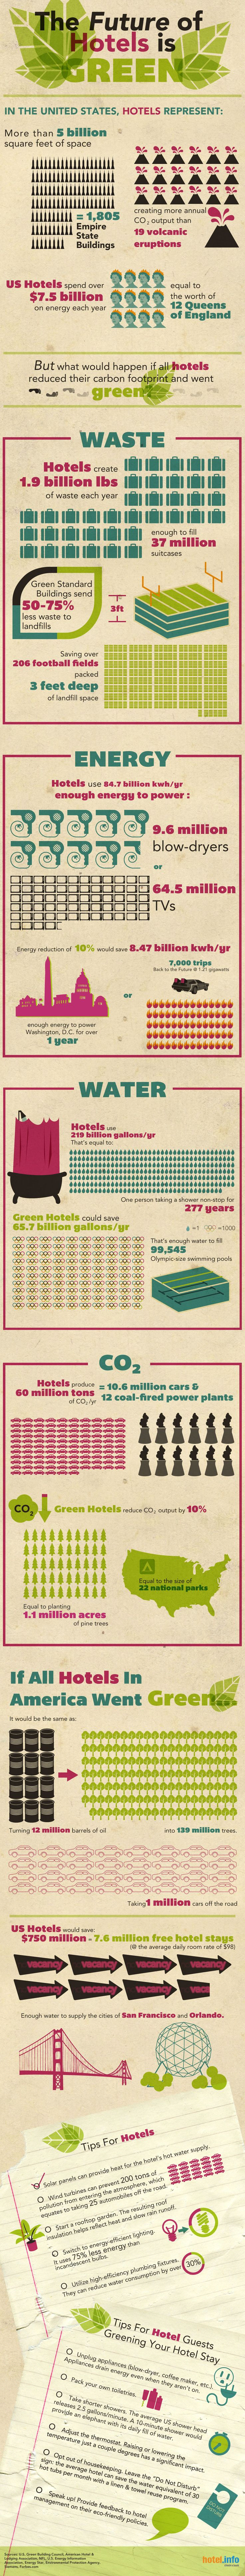 The Future of Hotels is Green